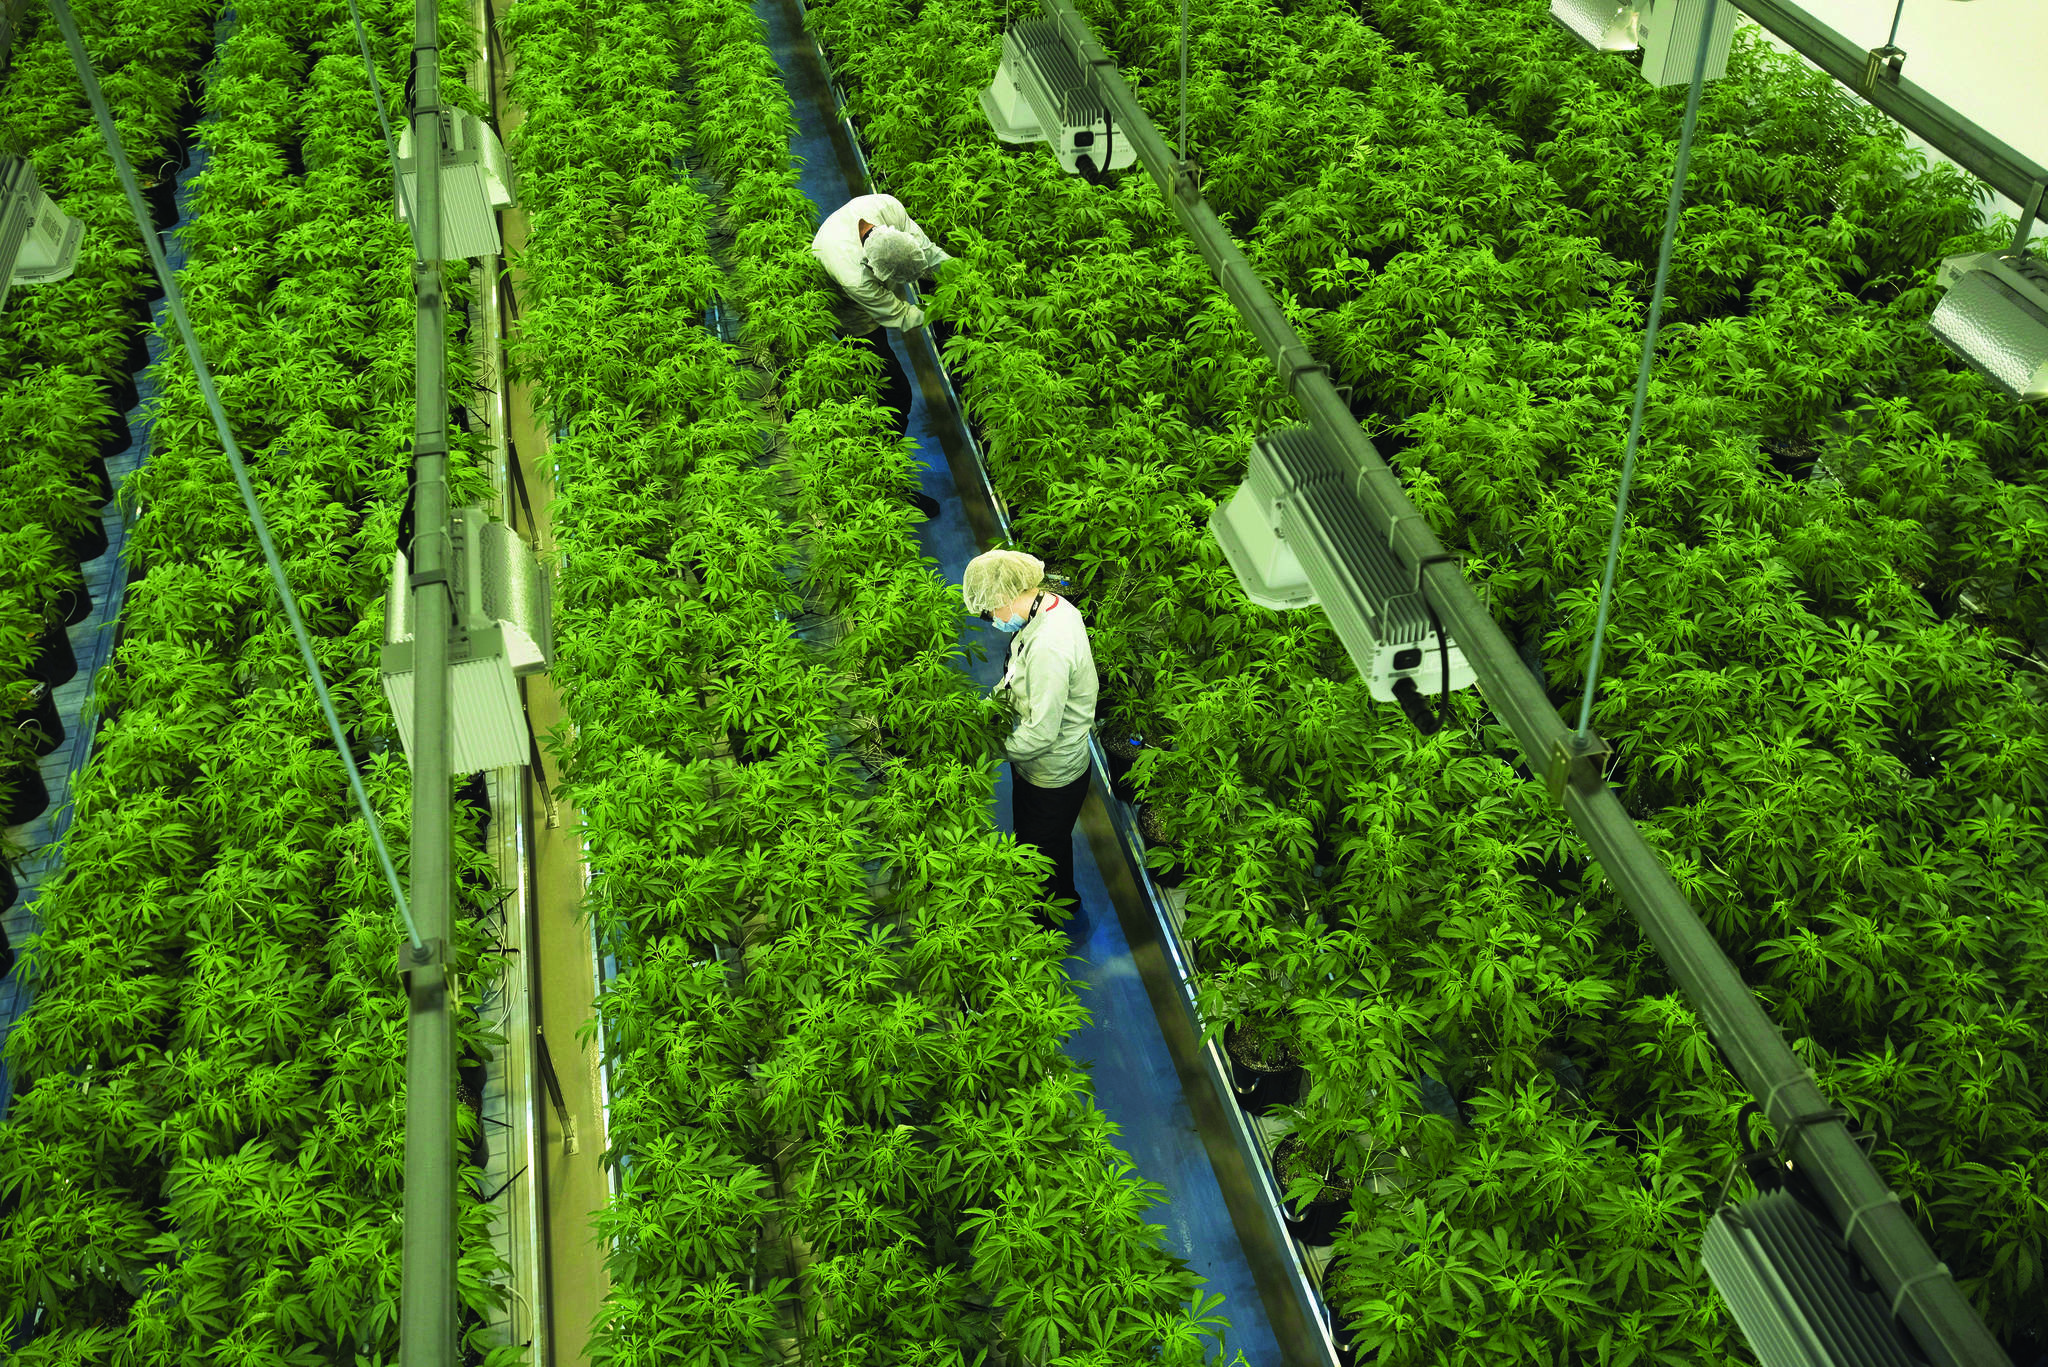 Canopy Growth Corp. closed down its Aldergrove cannabis greenhouses back in March, but still operates a visitors centre in Ontario. (Sean Kilpatrick/Canadian Press)